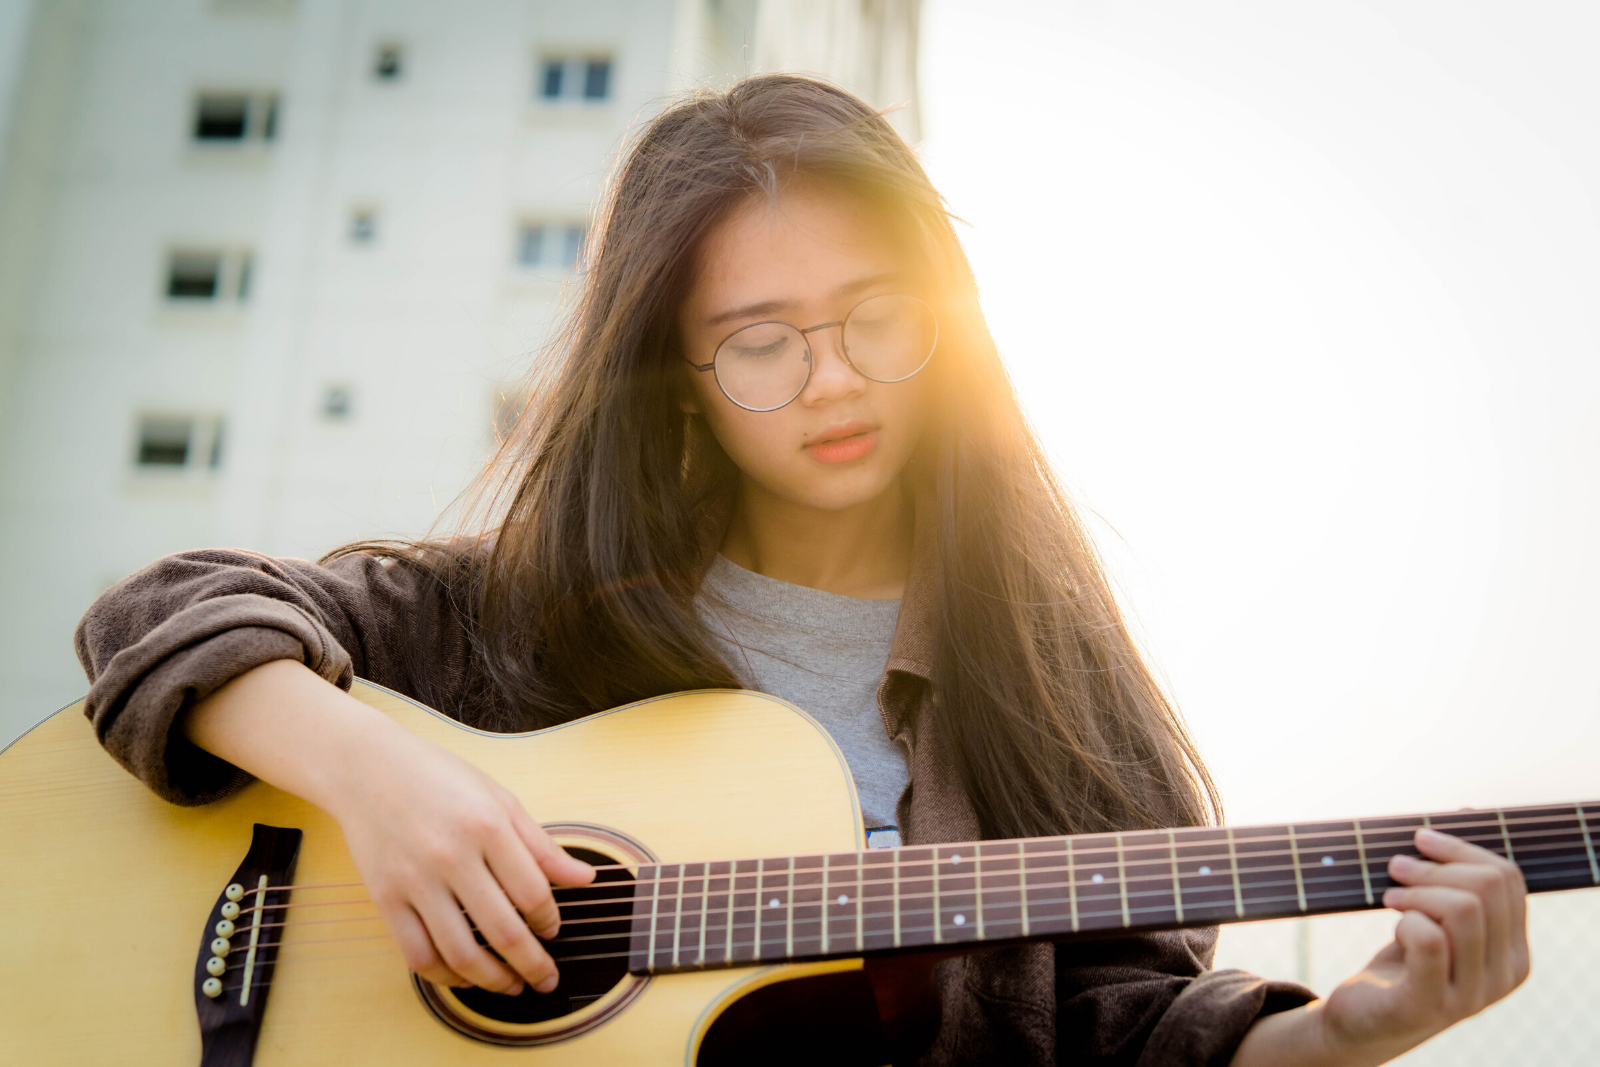 Girl Playing Guitar | Which Is The Easiest Guitar To Learn For Beginners?